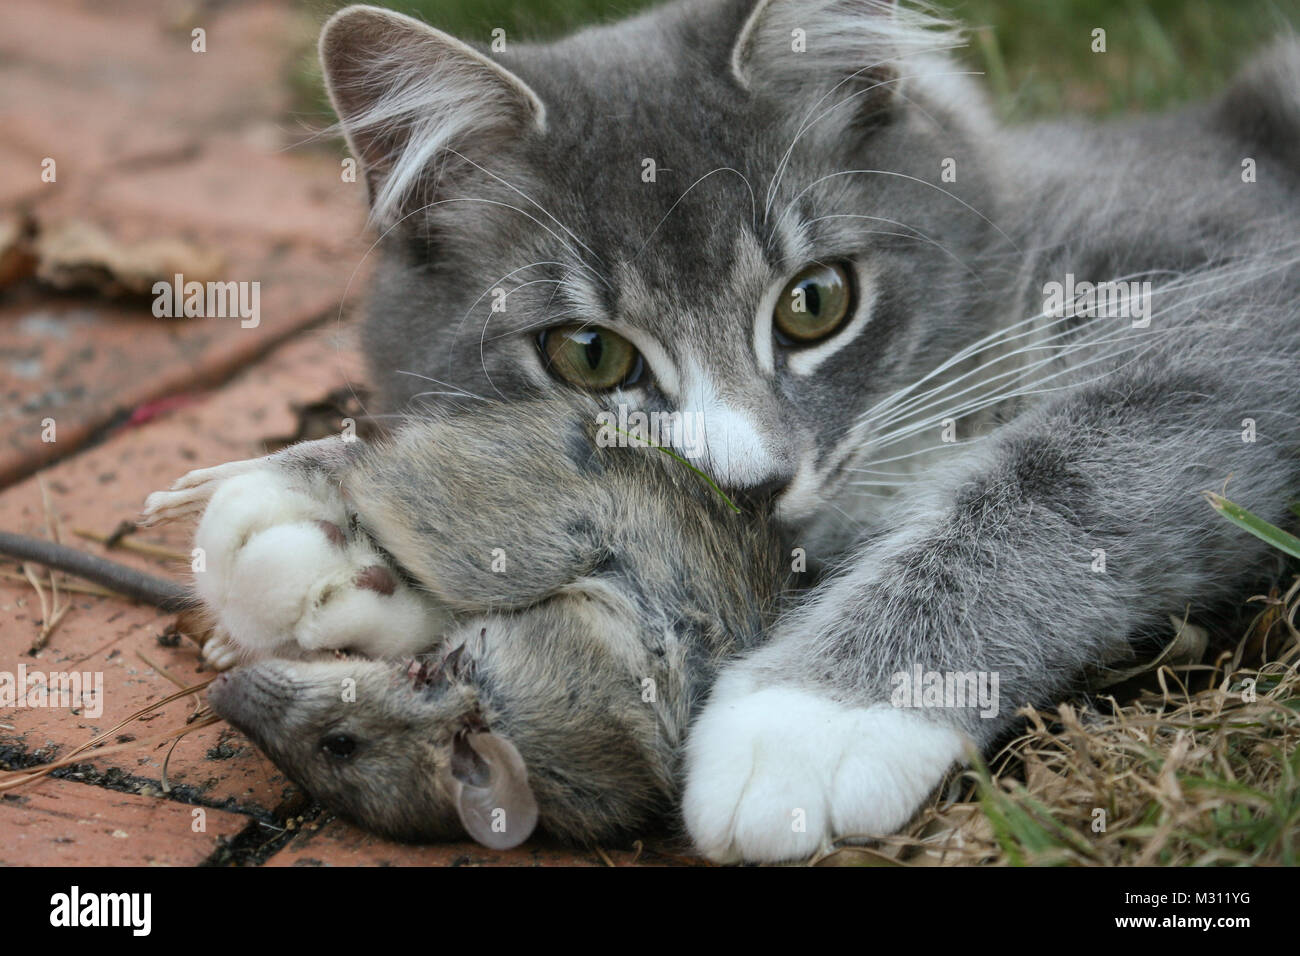 Image sums up perfectly the perceptive paradox we have of cats, on the one hand very cute, on the other, deadly - Stock Image